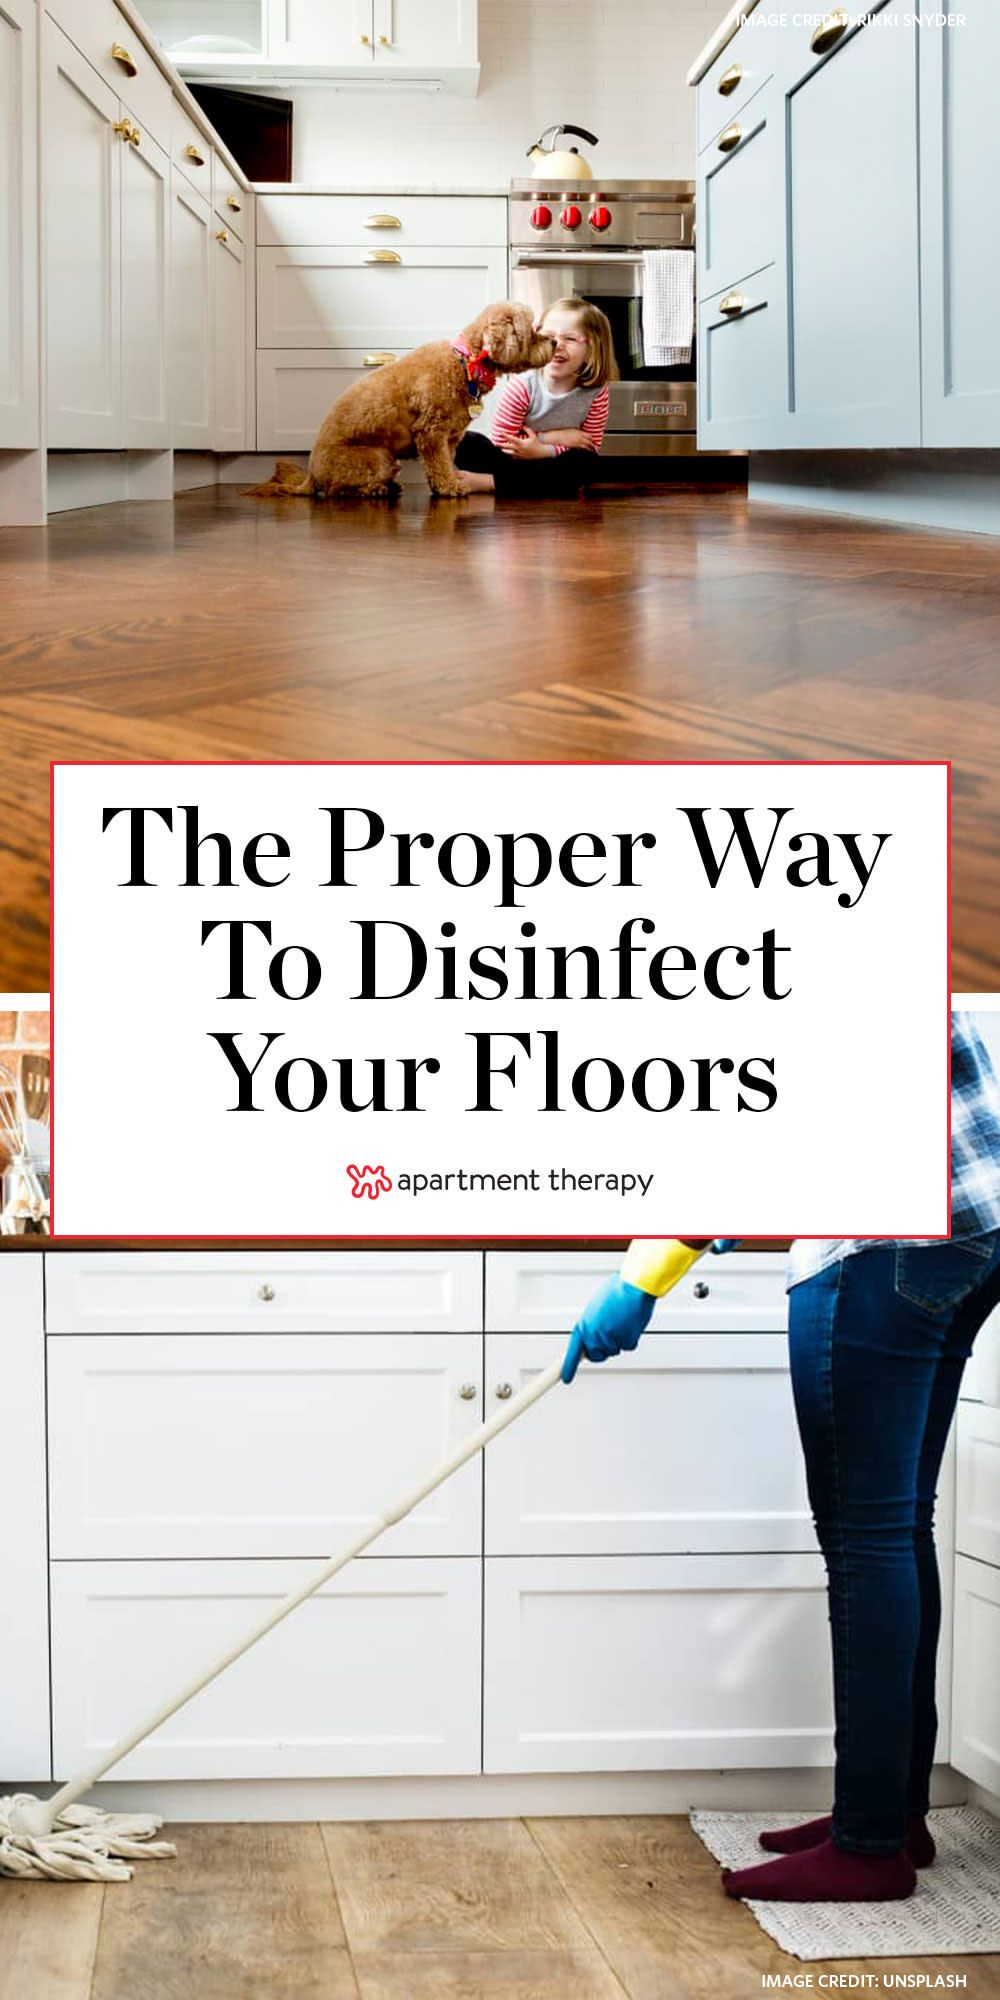 Here S What You Need To Know Before You Disinfect Your Floors In 2020 Clean House Floor Cleaner Disinfect